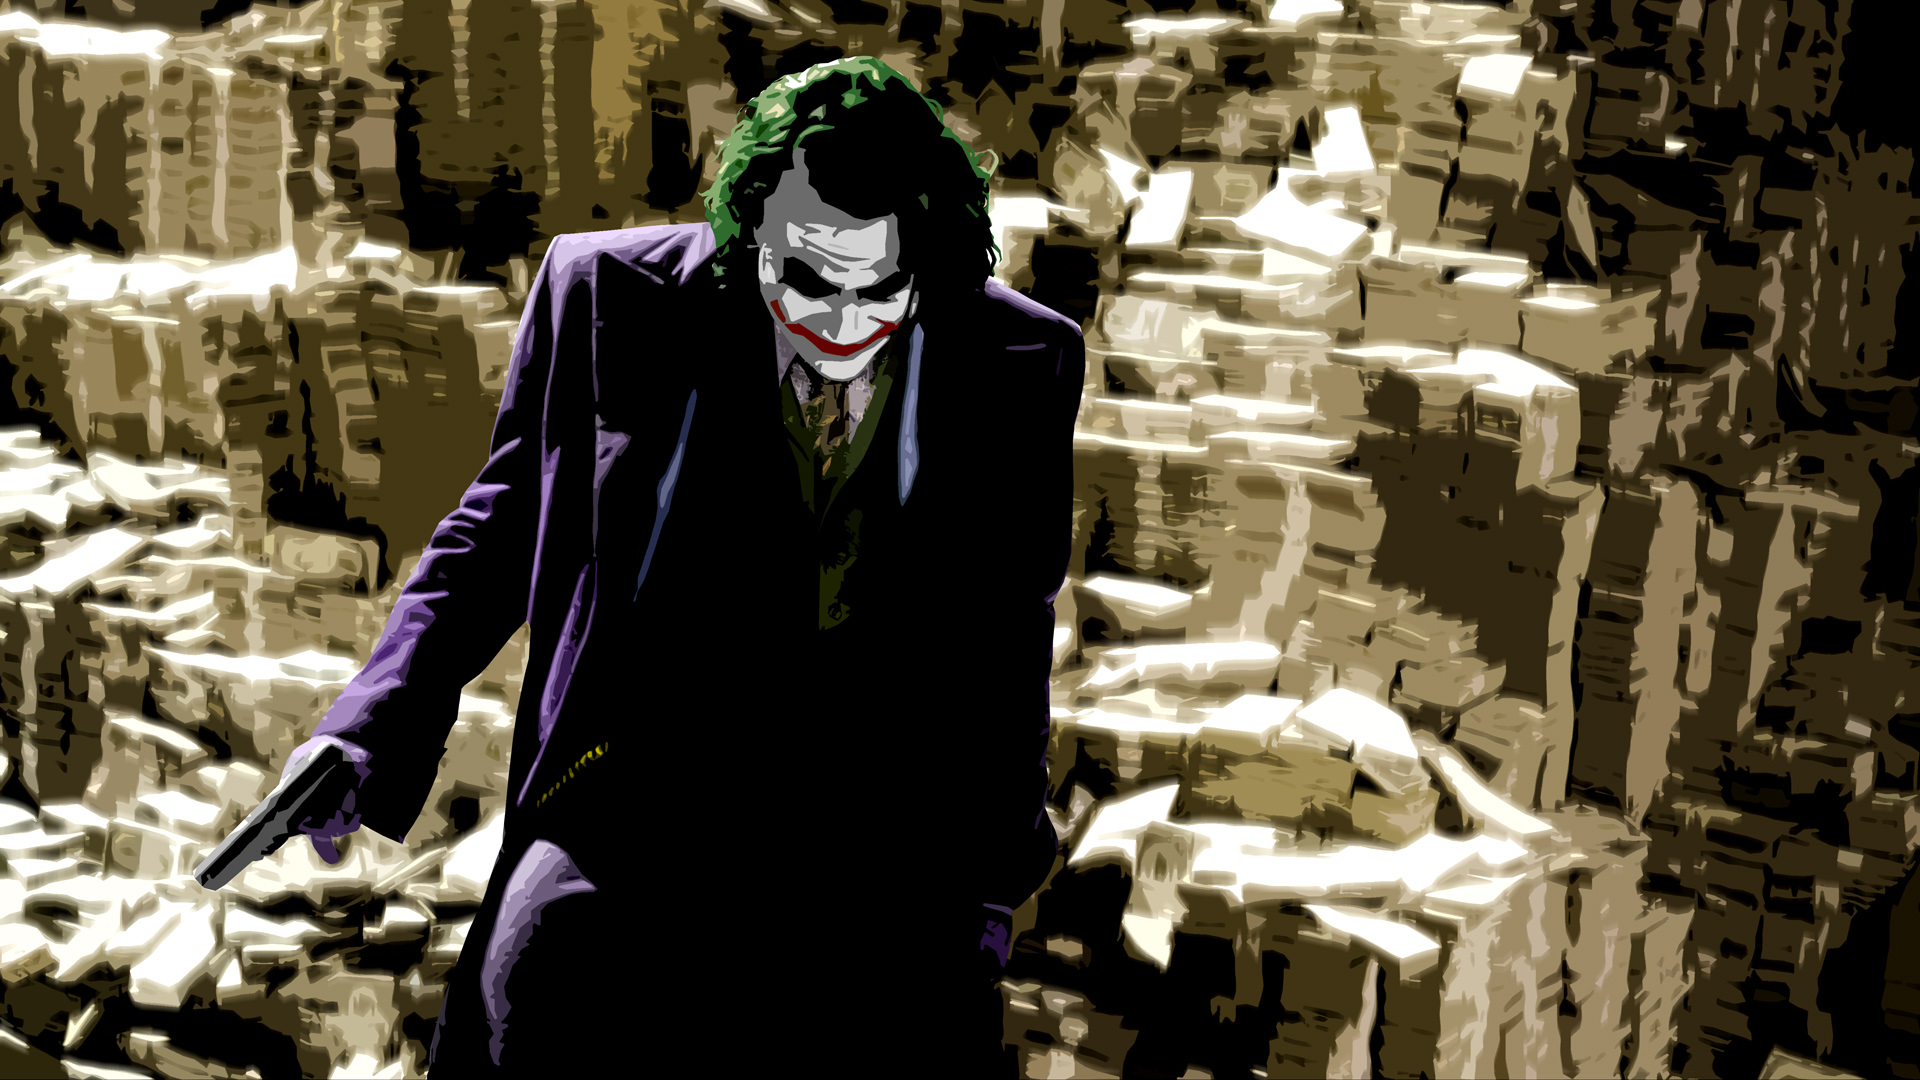 The Dark Knight Hd Wallpaper Background Image 1920x1080 Id